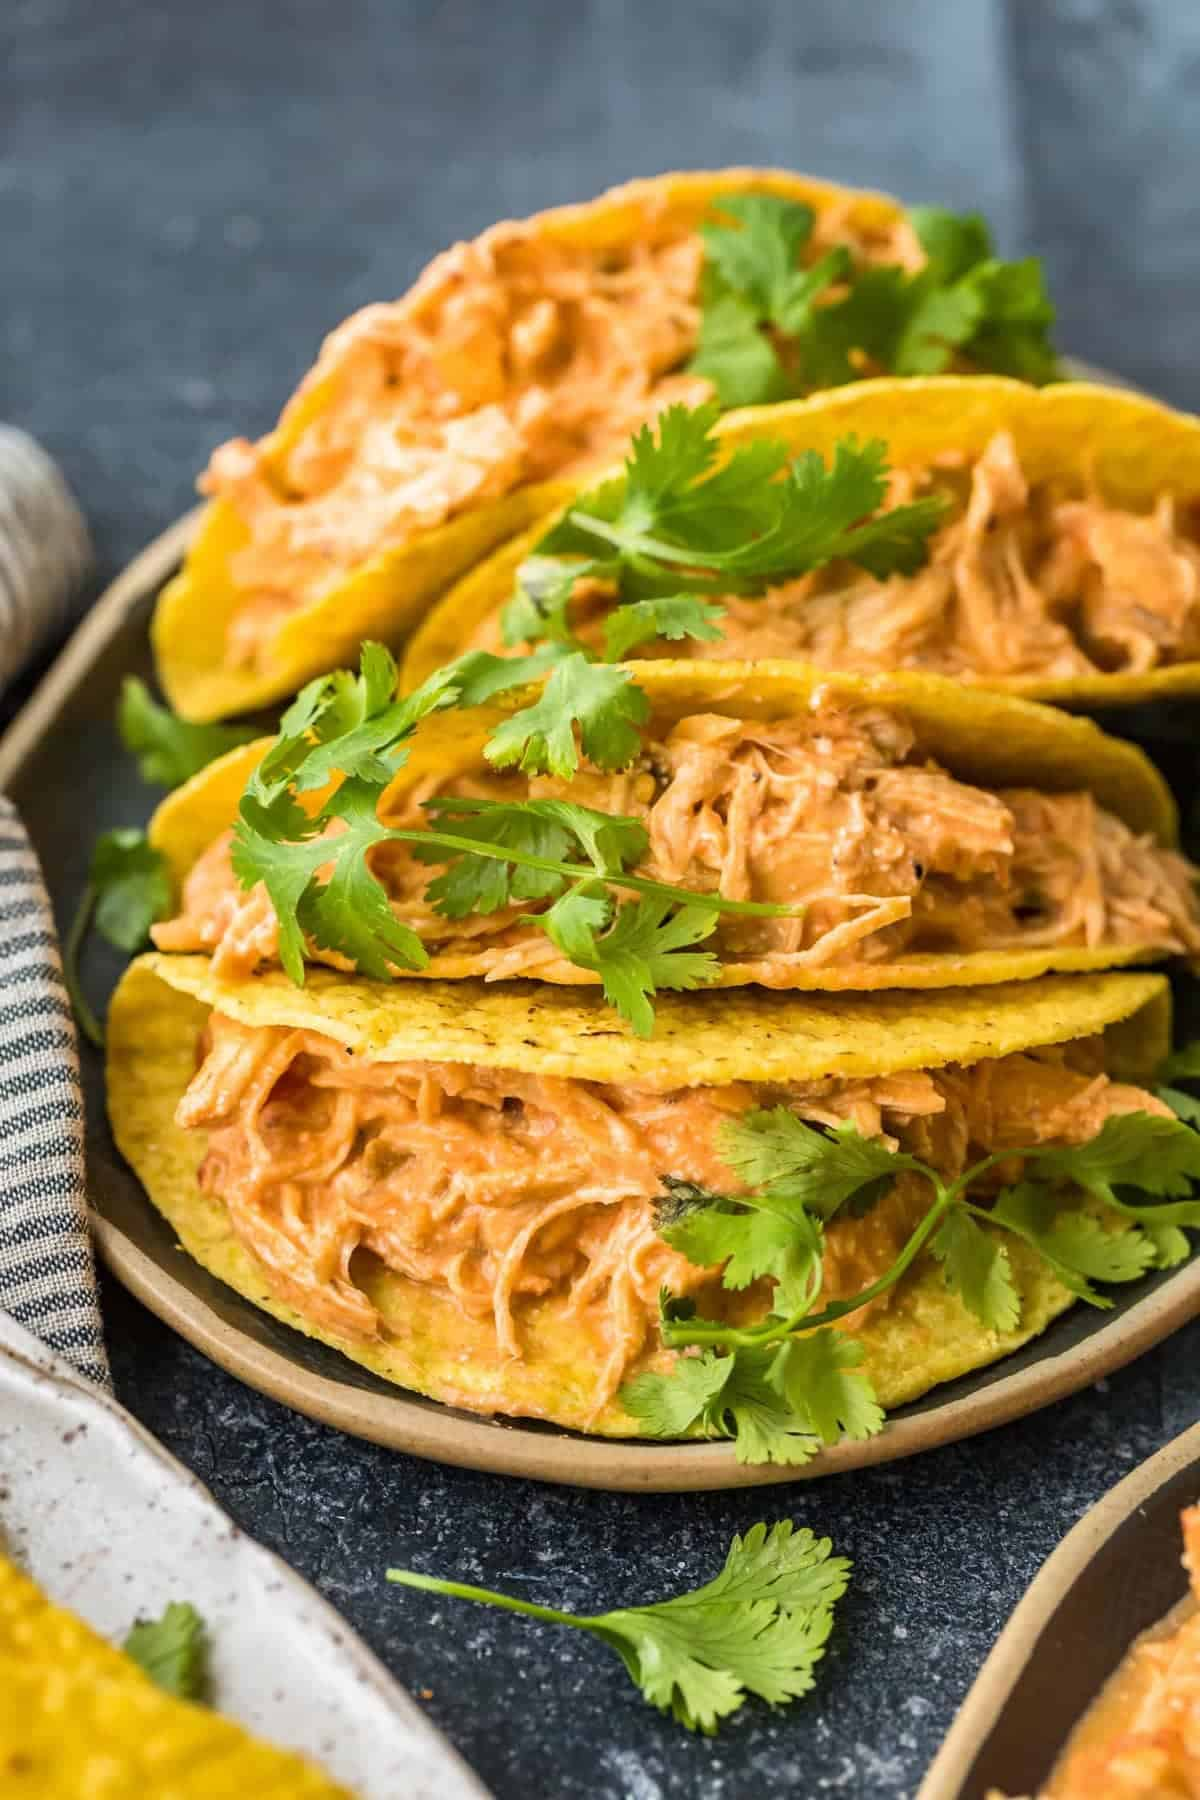 Four chicken tacos on a serving plate